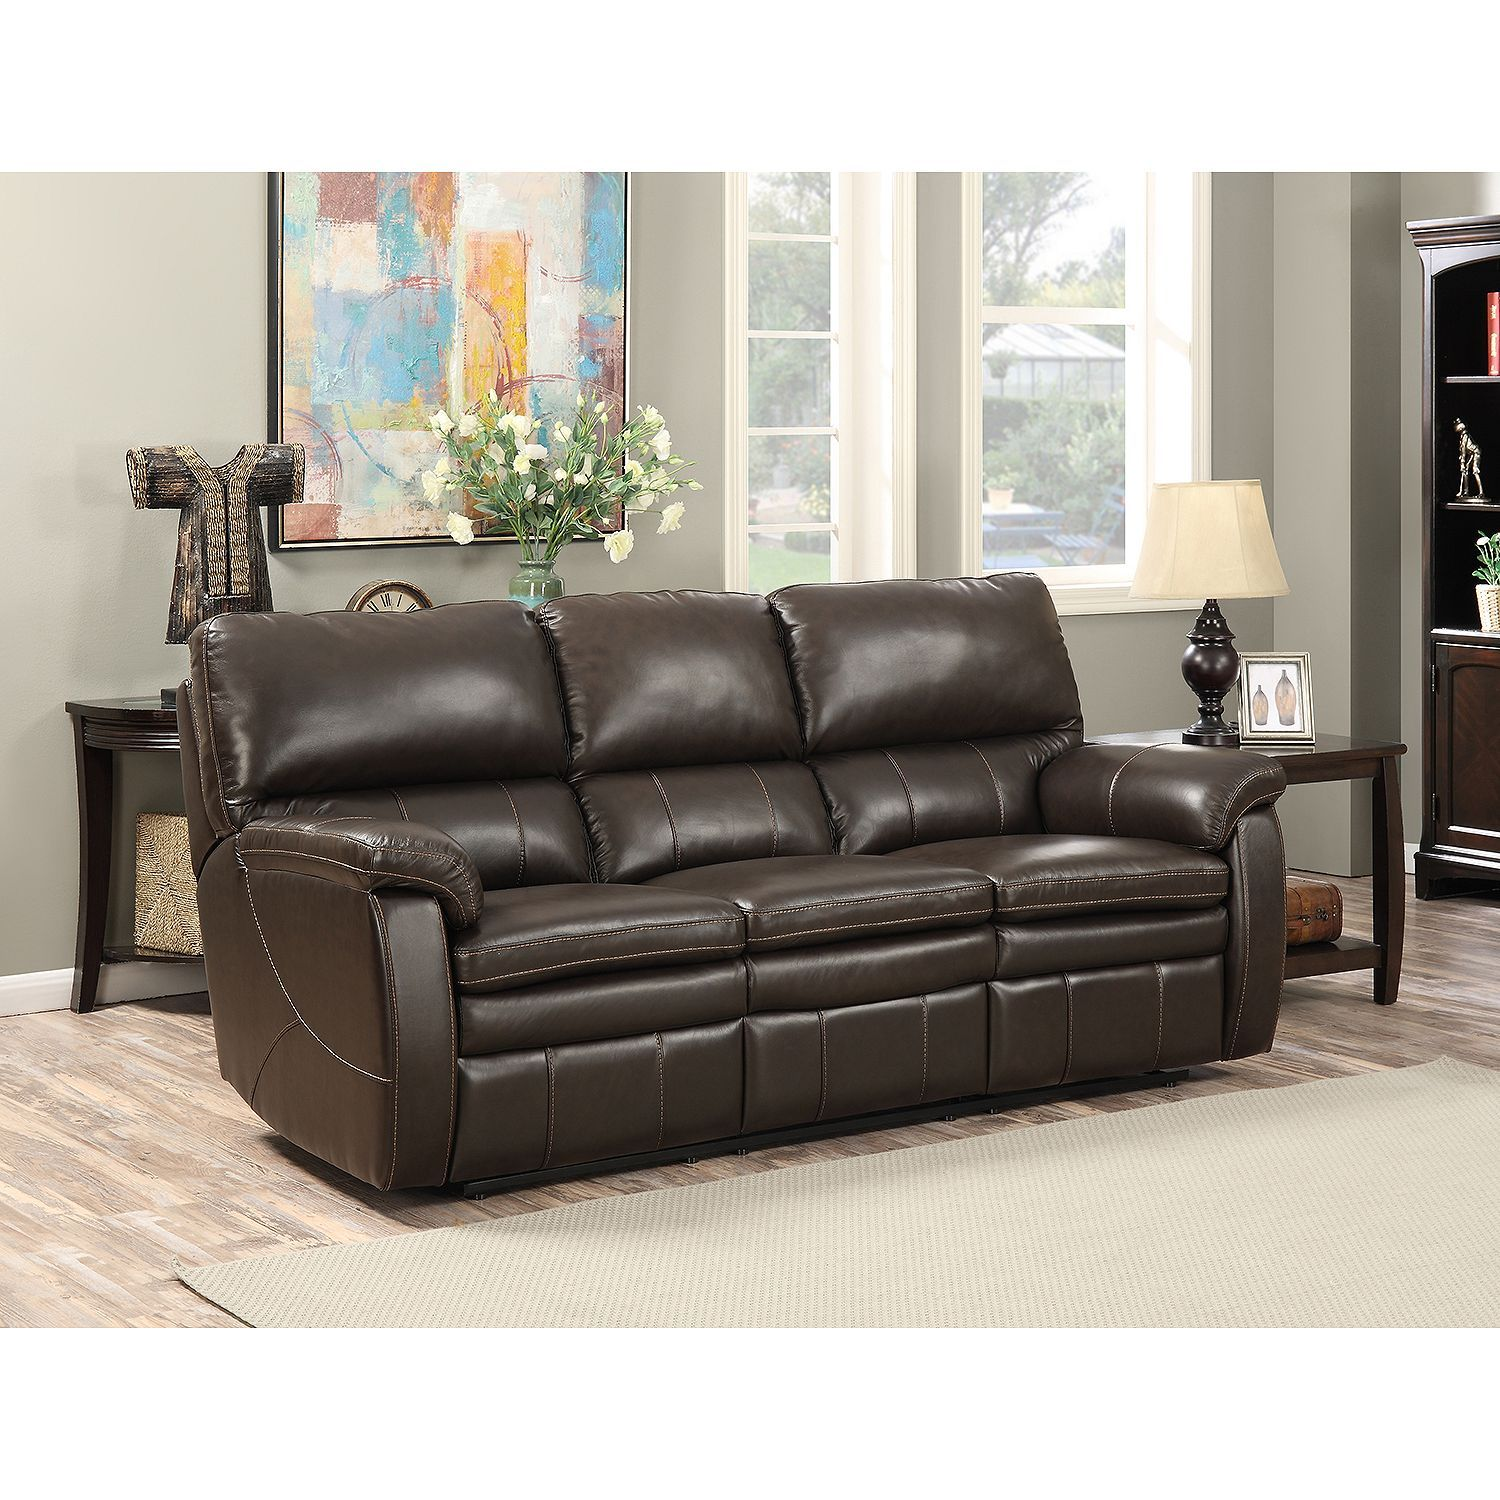 leather sofa sams club batman bed uk crawford top grain reclining in 2019 home sam s